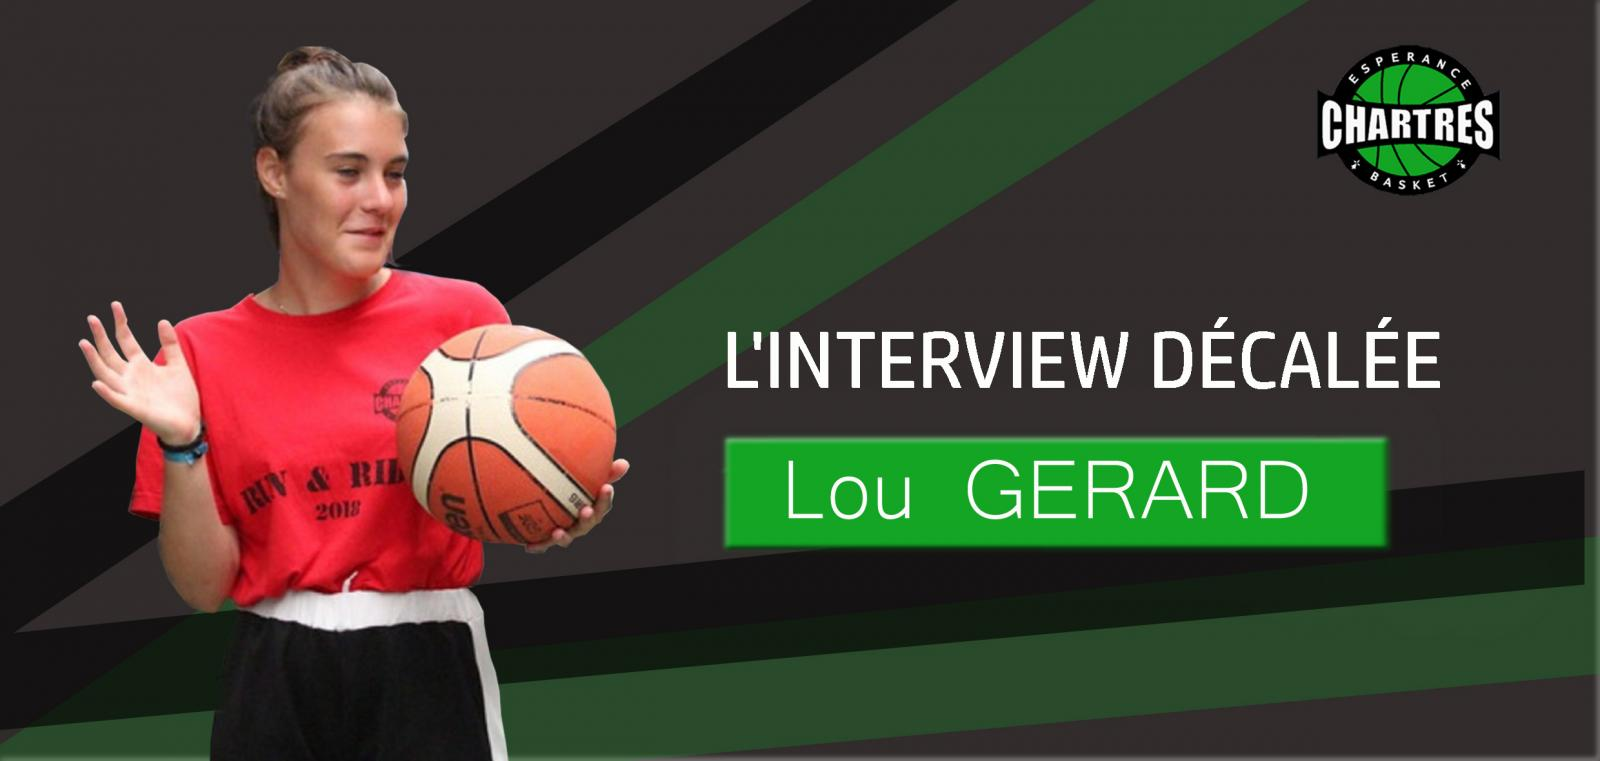 Interview décalée Lou GERARD